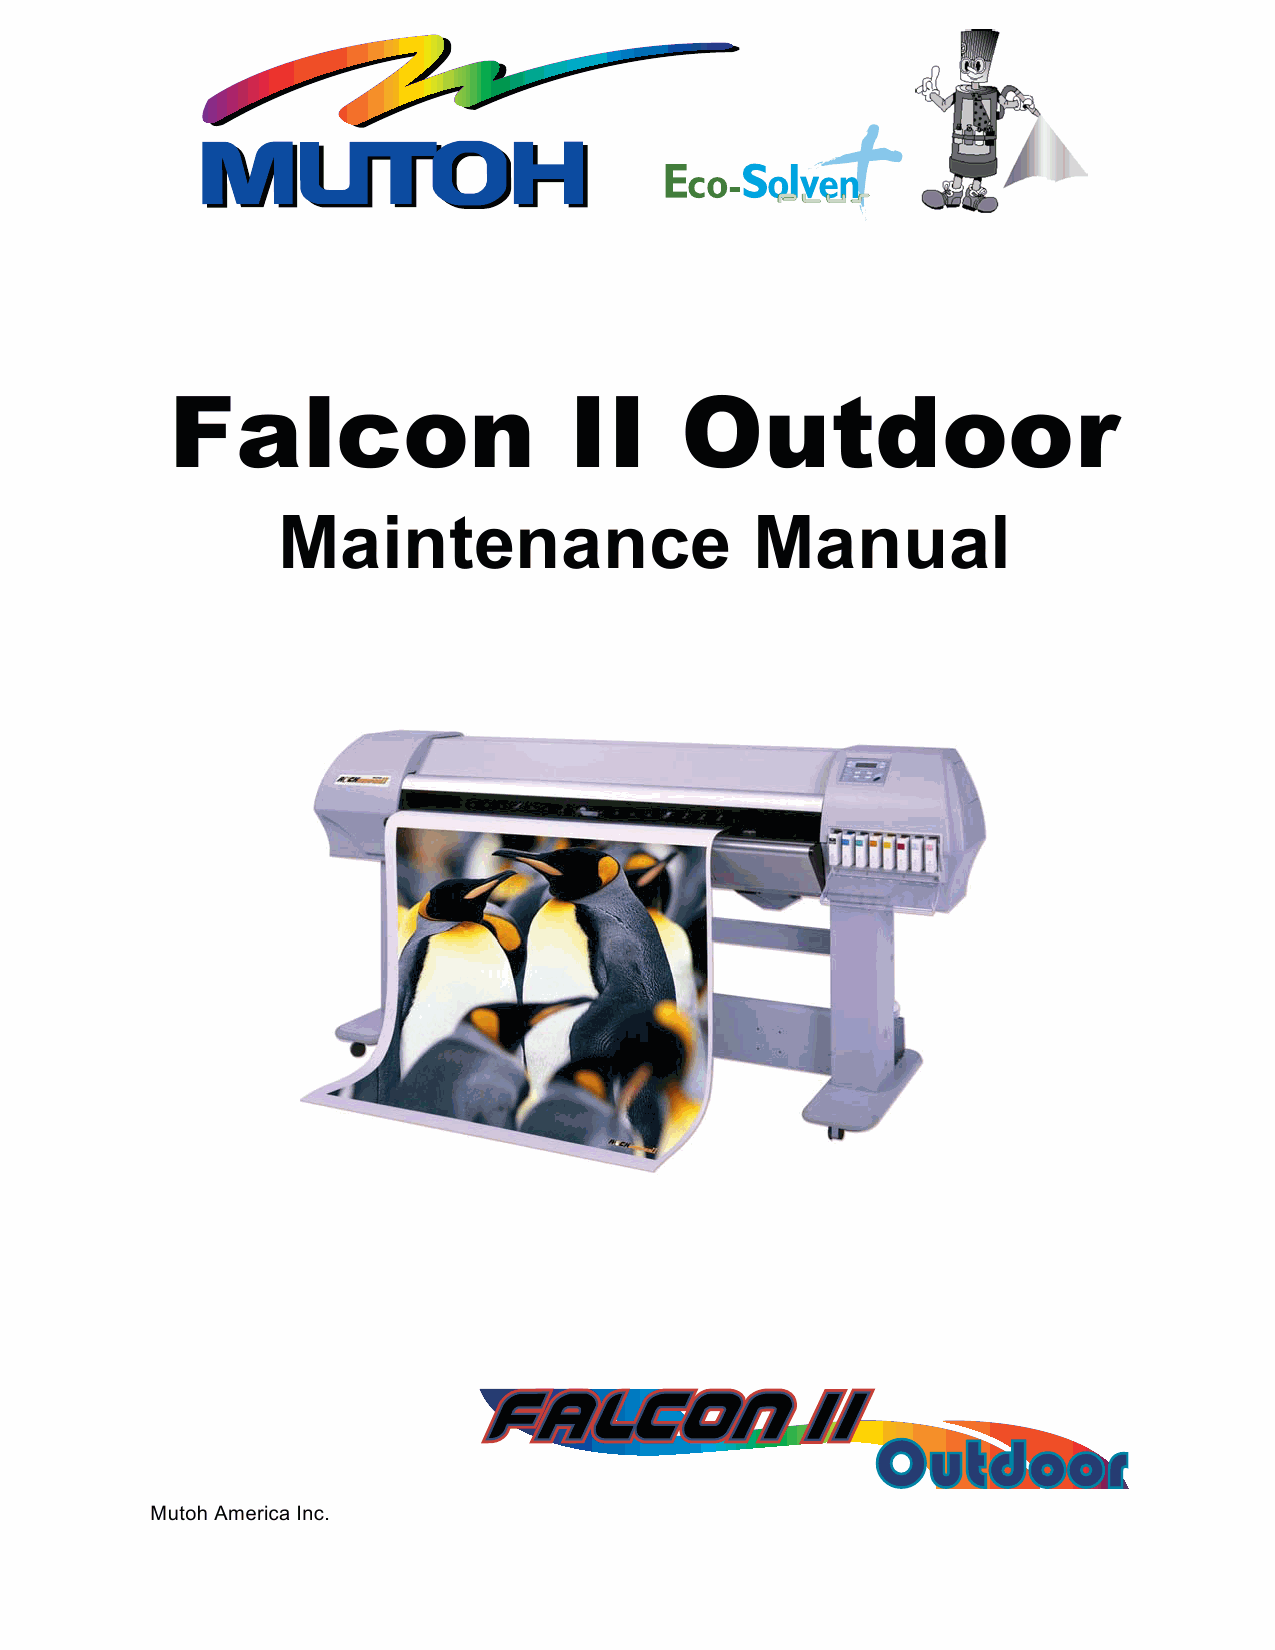 MUTOH FalconII Outdoor Service Manual-1